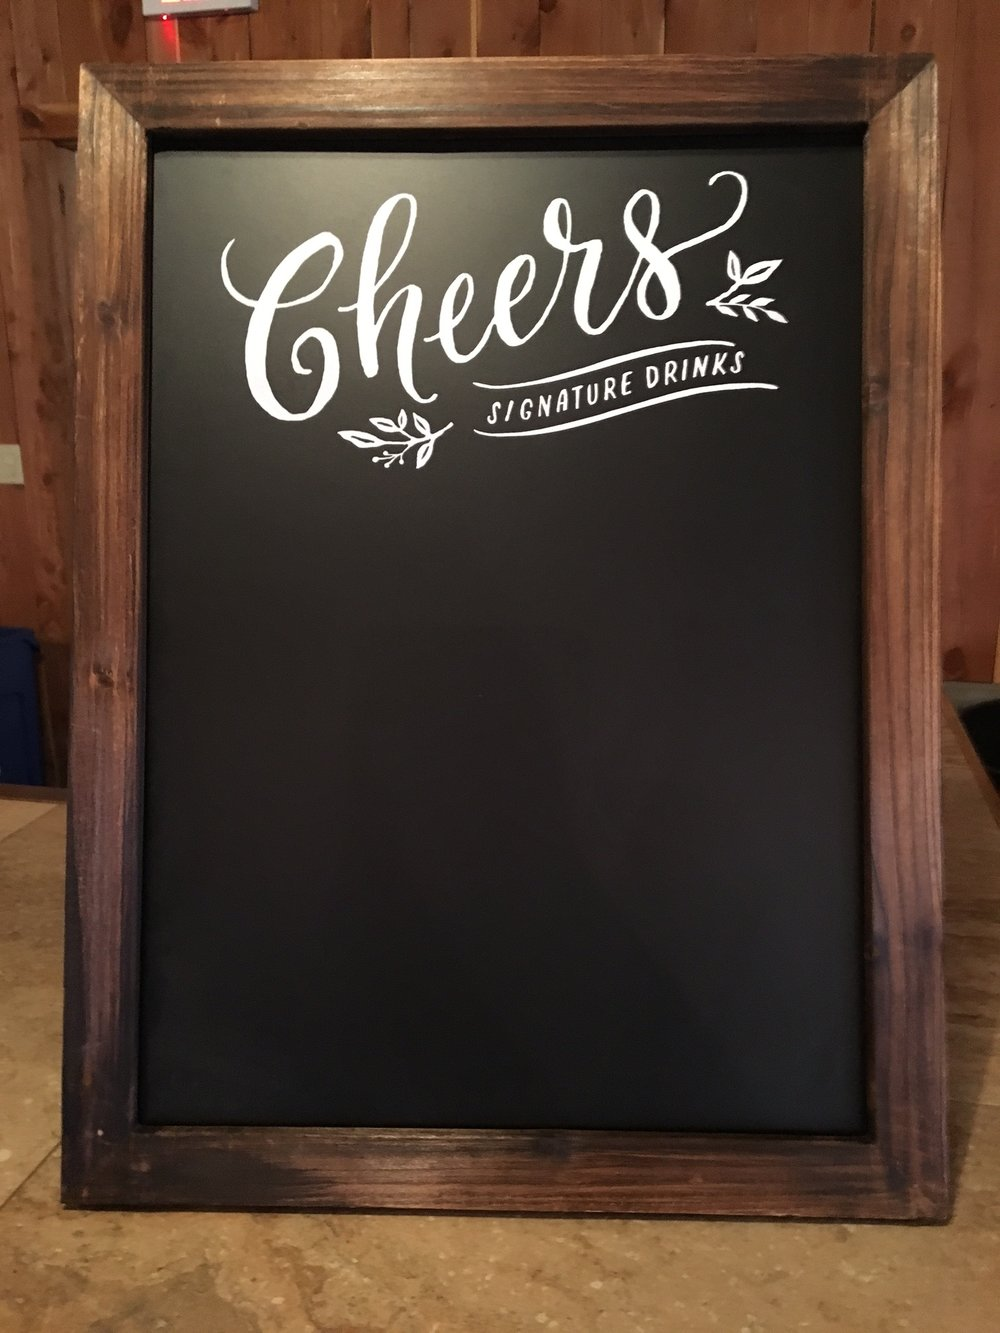 #184 - Signature Drinks Bar Sign